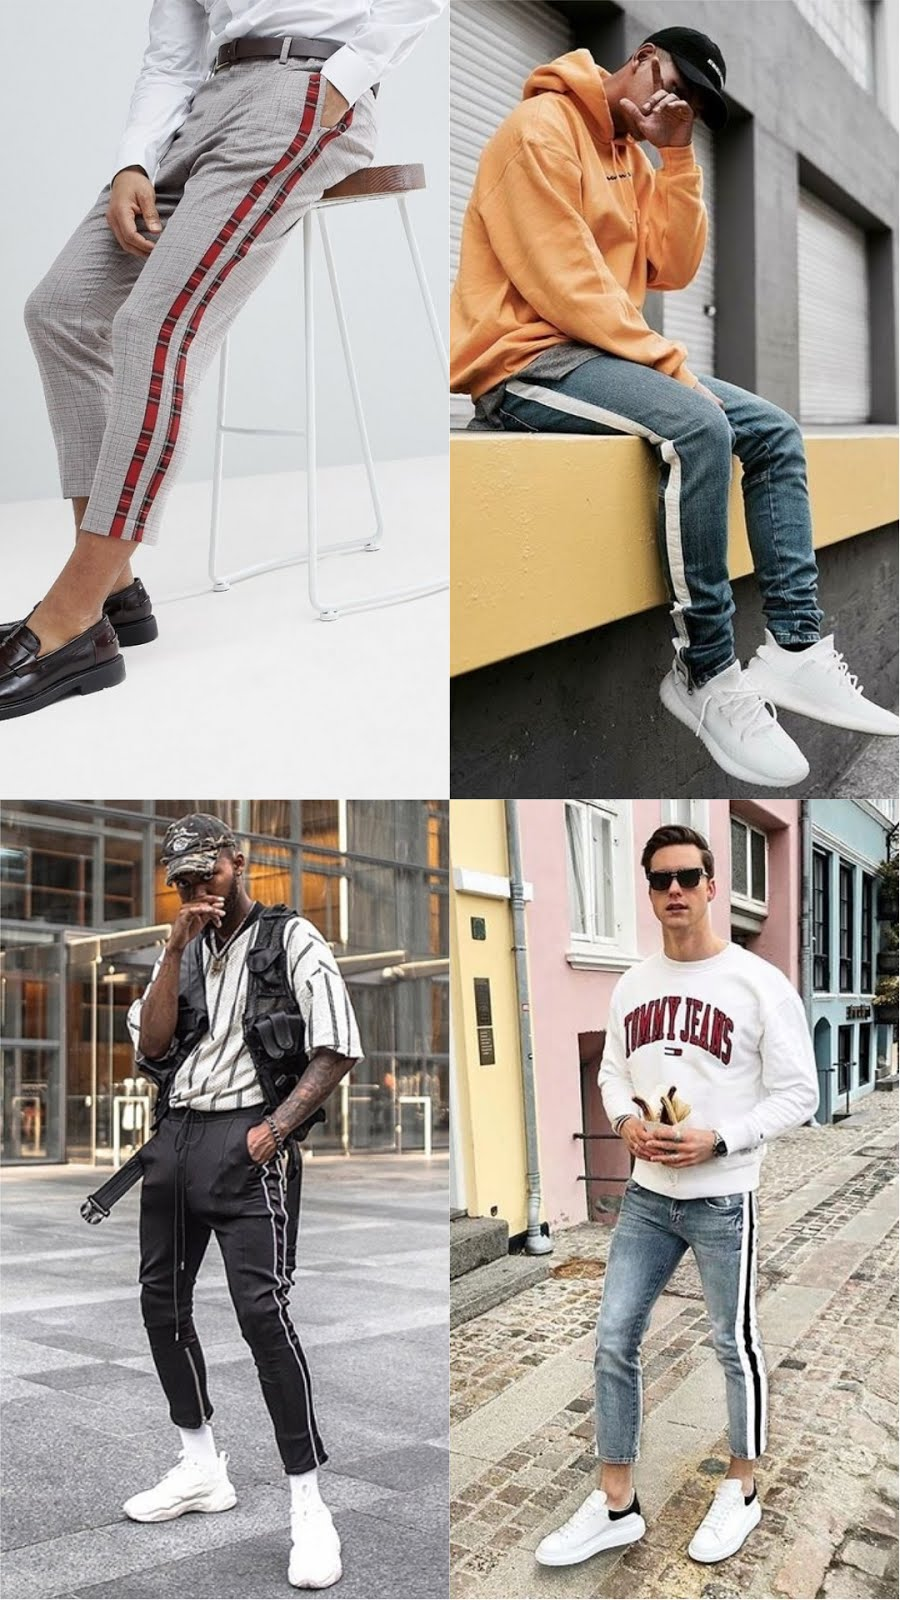 tendencias-moda-masculina-primavera-verao-2019-blog-tres-chic-side-stripe-pants-calca-listras-laterais